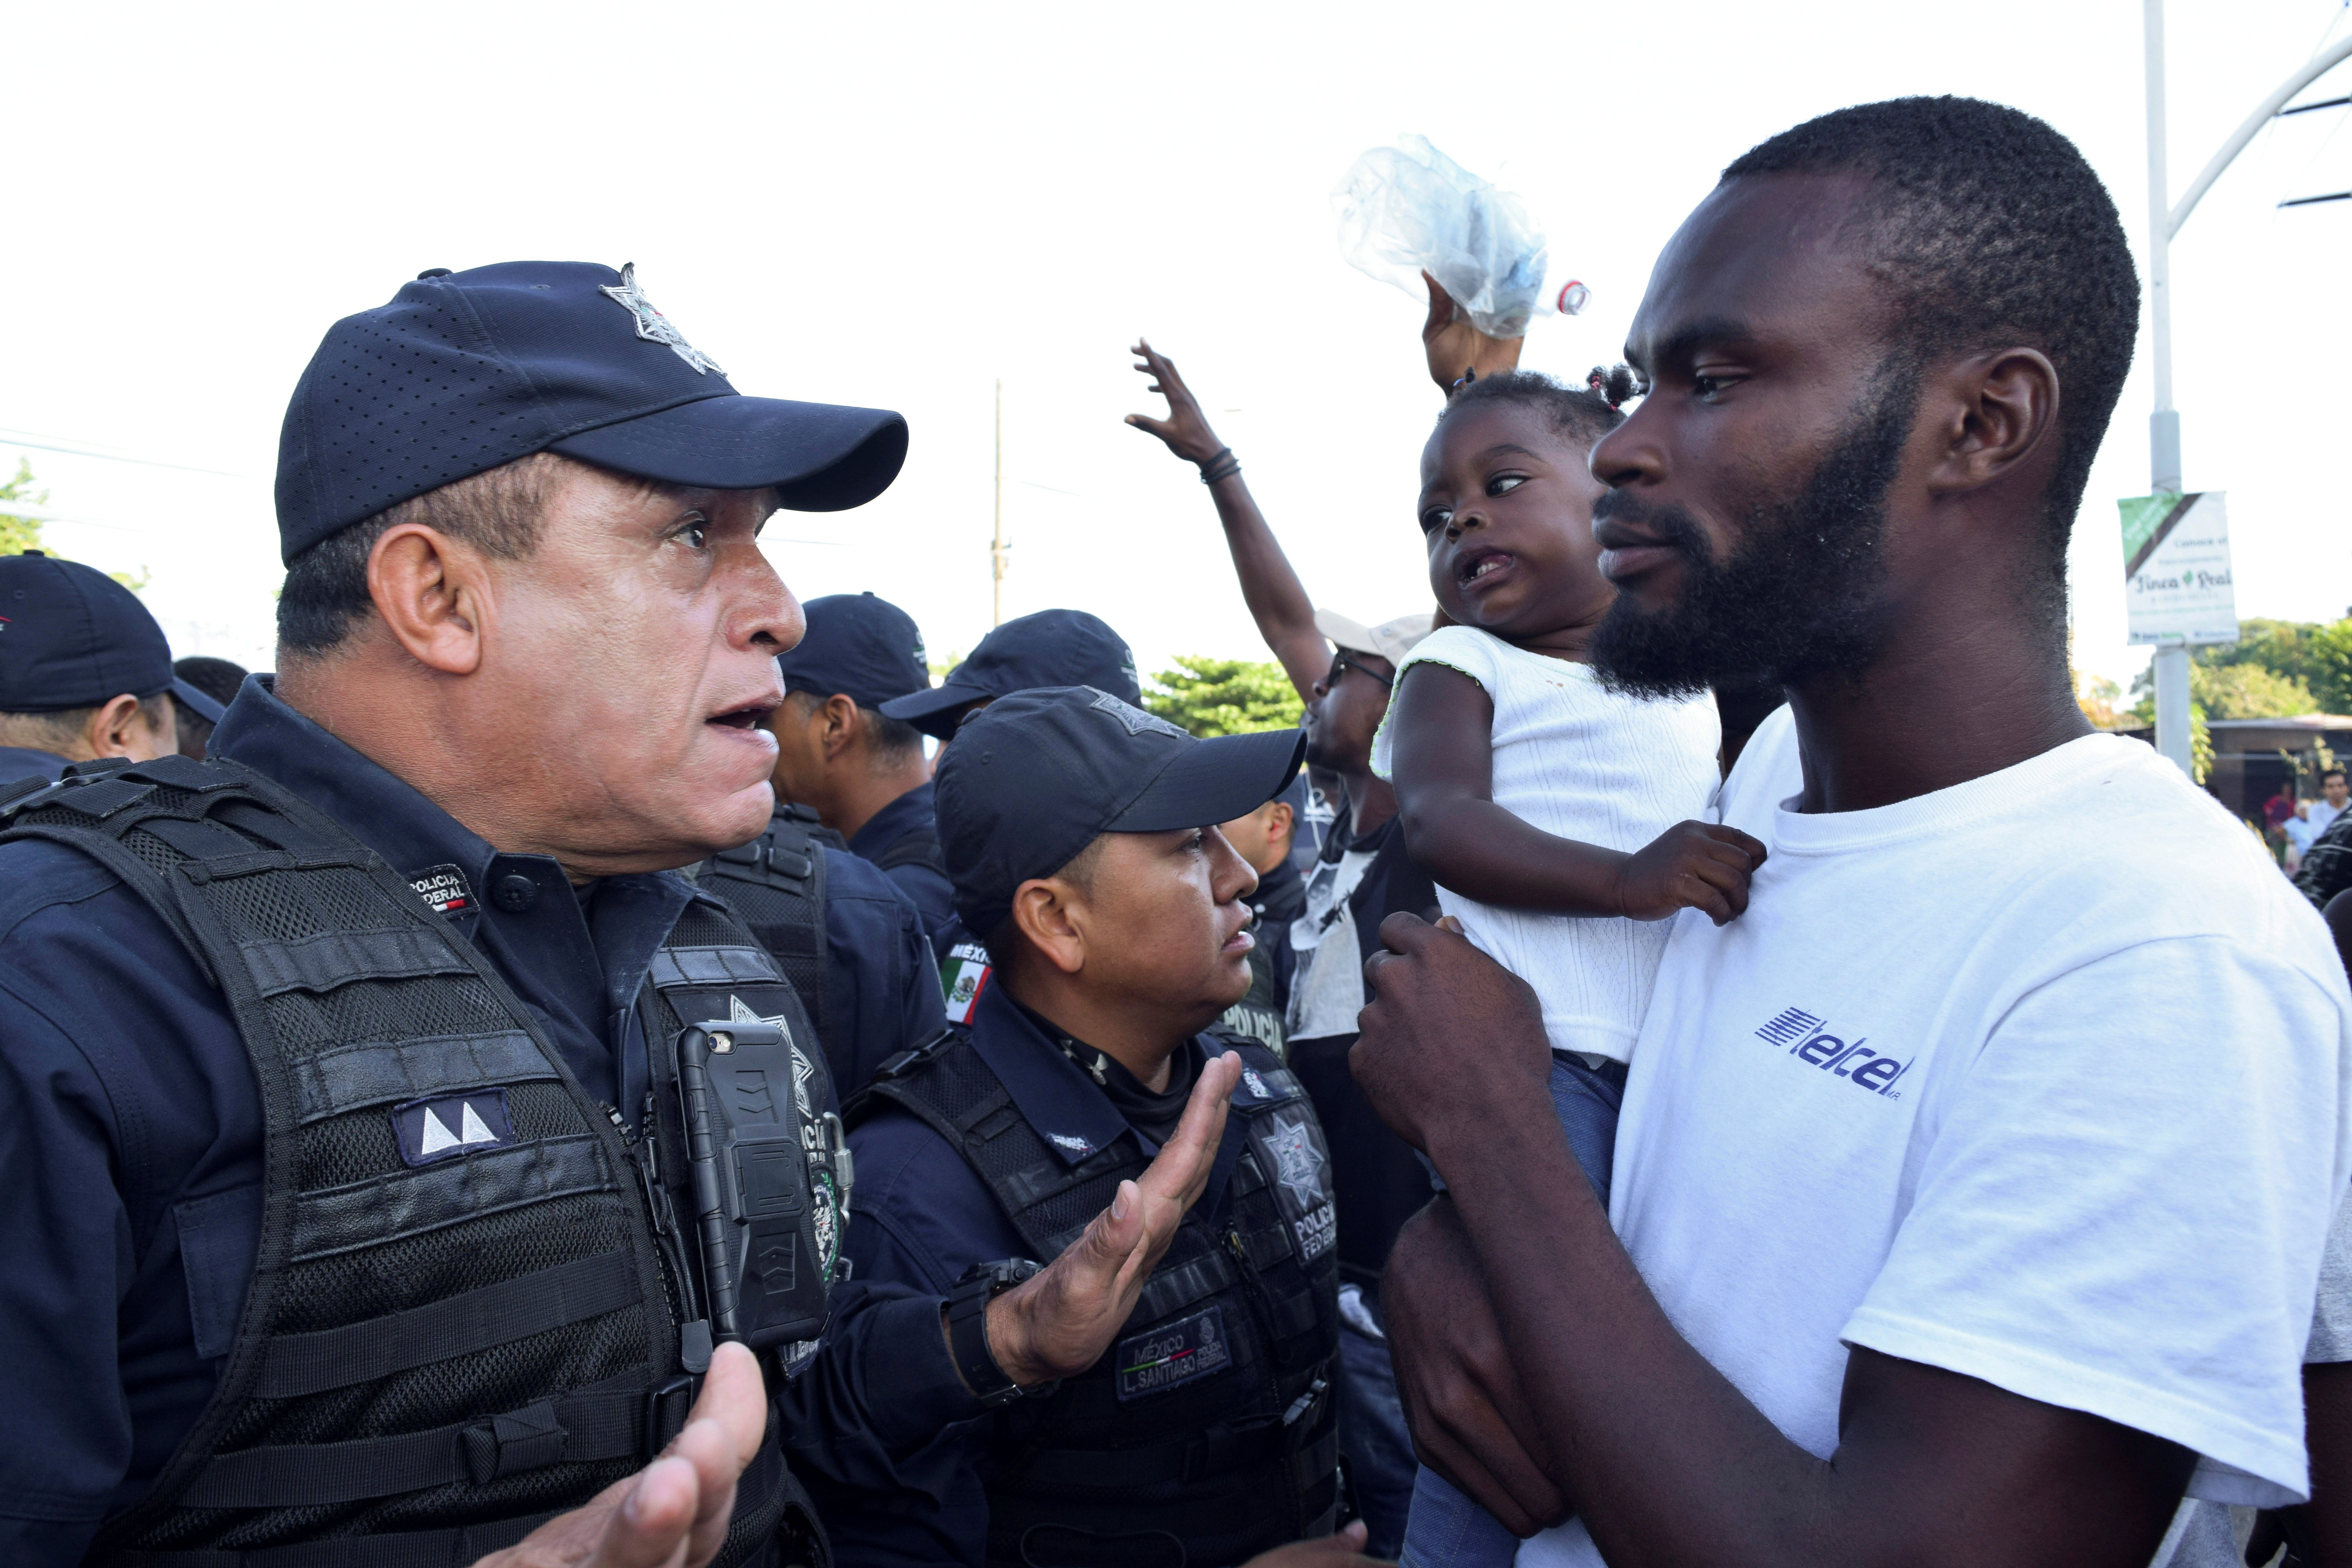 Migrants from Haiti and Africa protest outside the Siglo XXI immigrant detention center in Tapachula